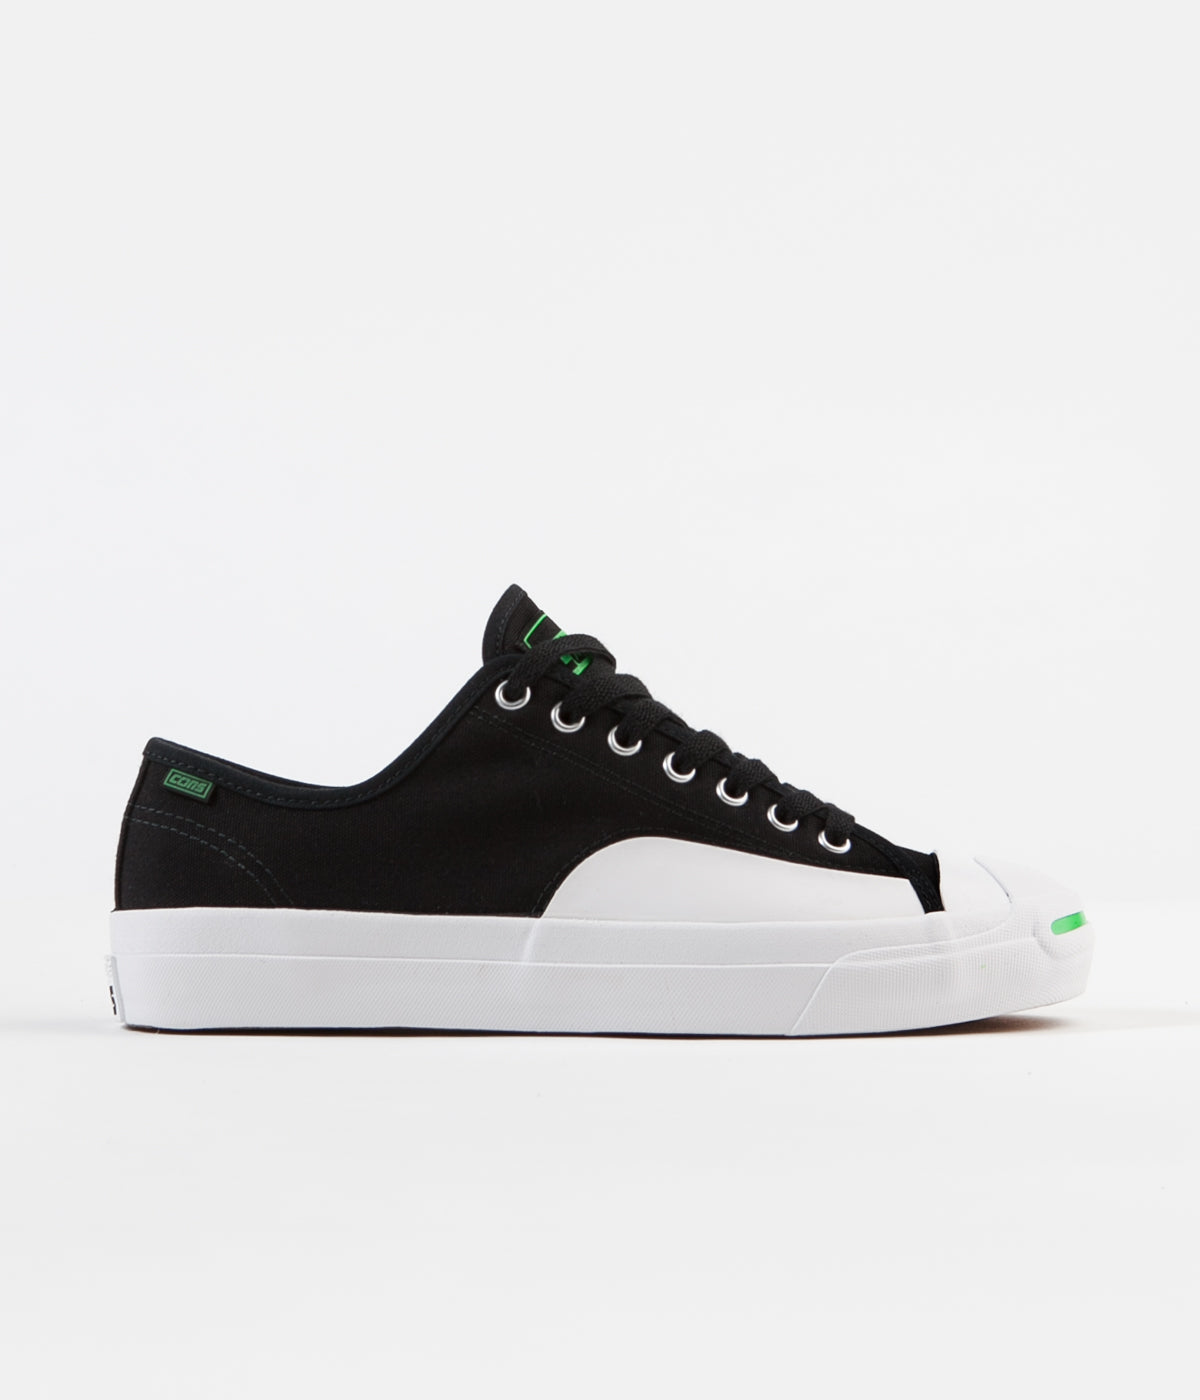 Converse Jack Purcell Pro Op Ox Shoes - Black / Acid Green / White